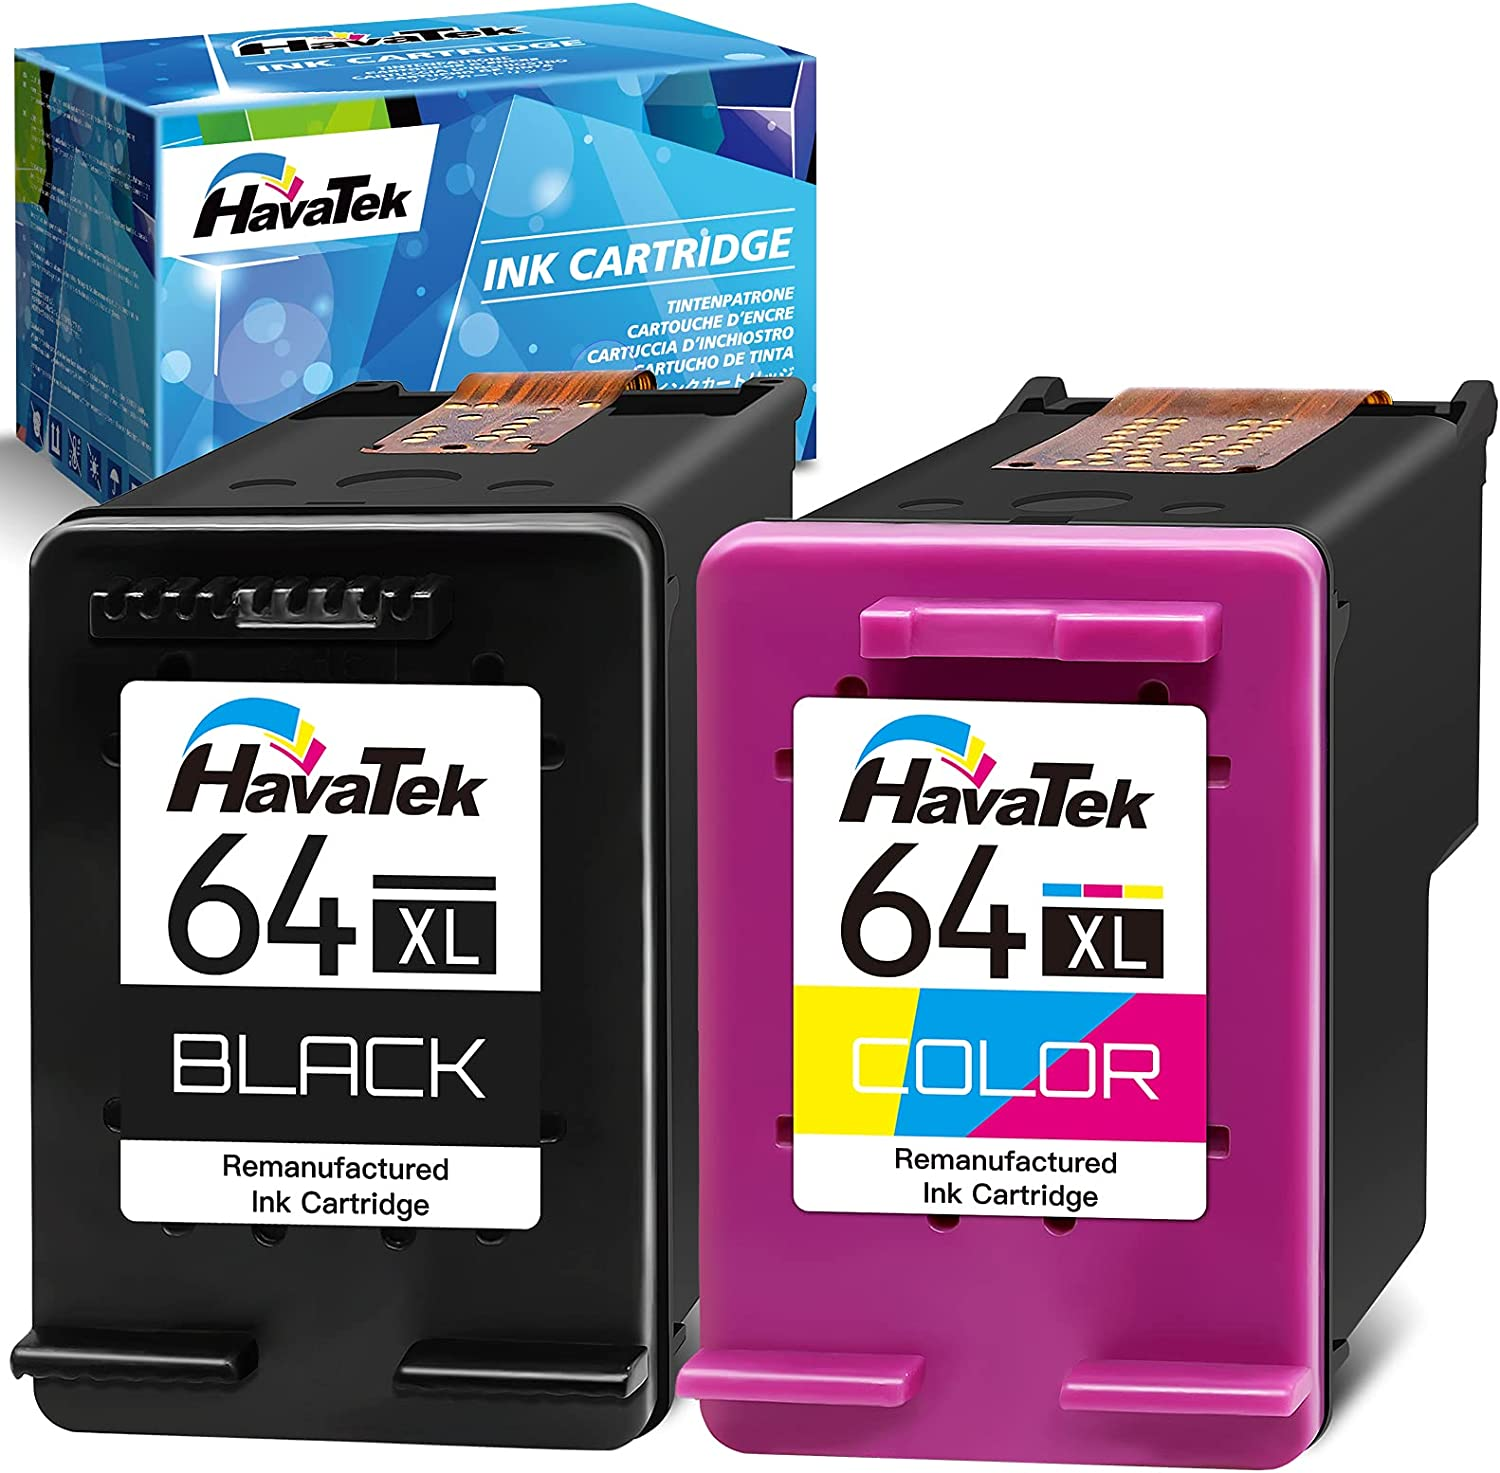 HavaTek Remanufactured Ink Cartridges Replacement for HP 64XL 64 XL (1 Black,1 Color) for HP Envy Photo 7800 7858 7155 7855 6220 6255 6252 7158 7164 6222 7120 7130 6230 6232 6234 Tango X Printer